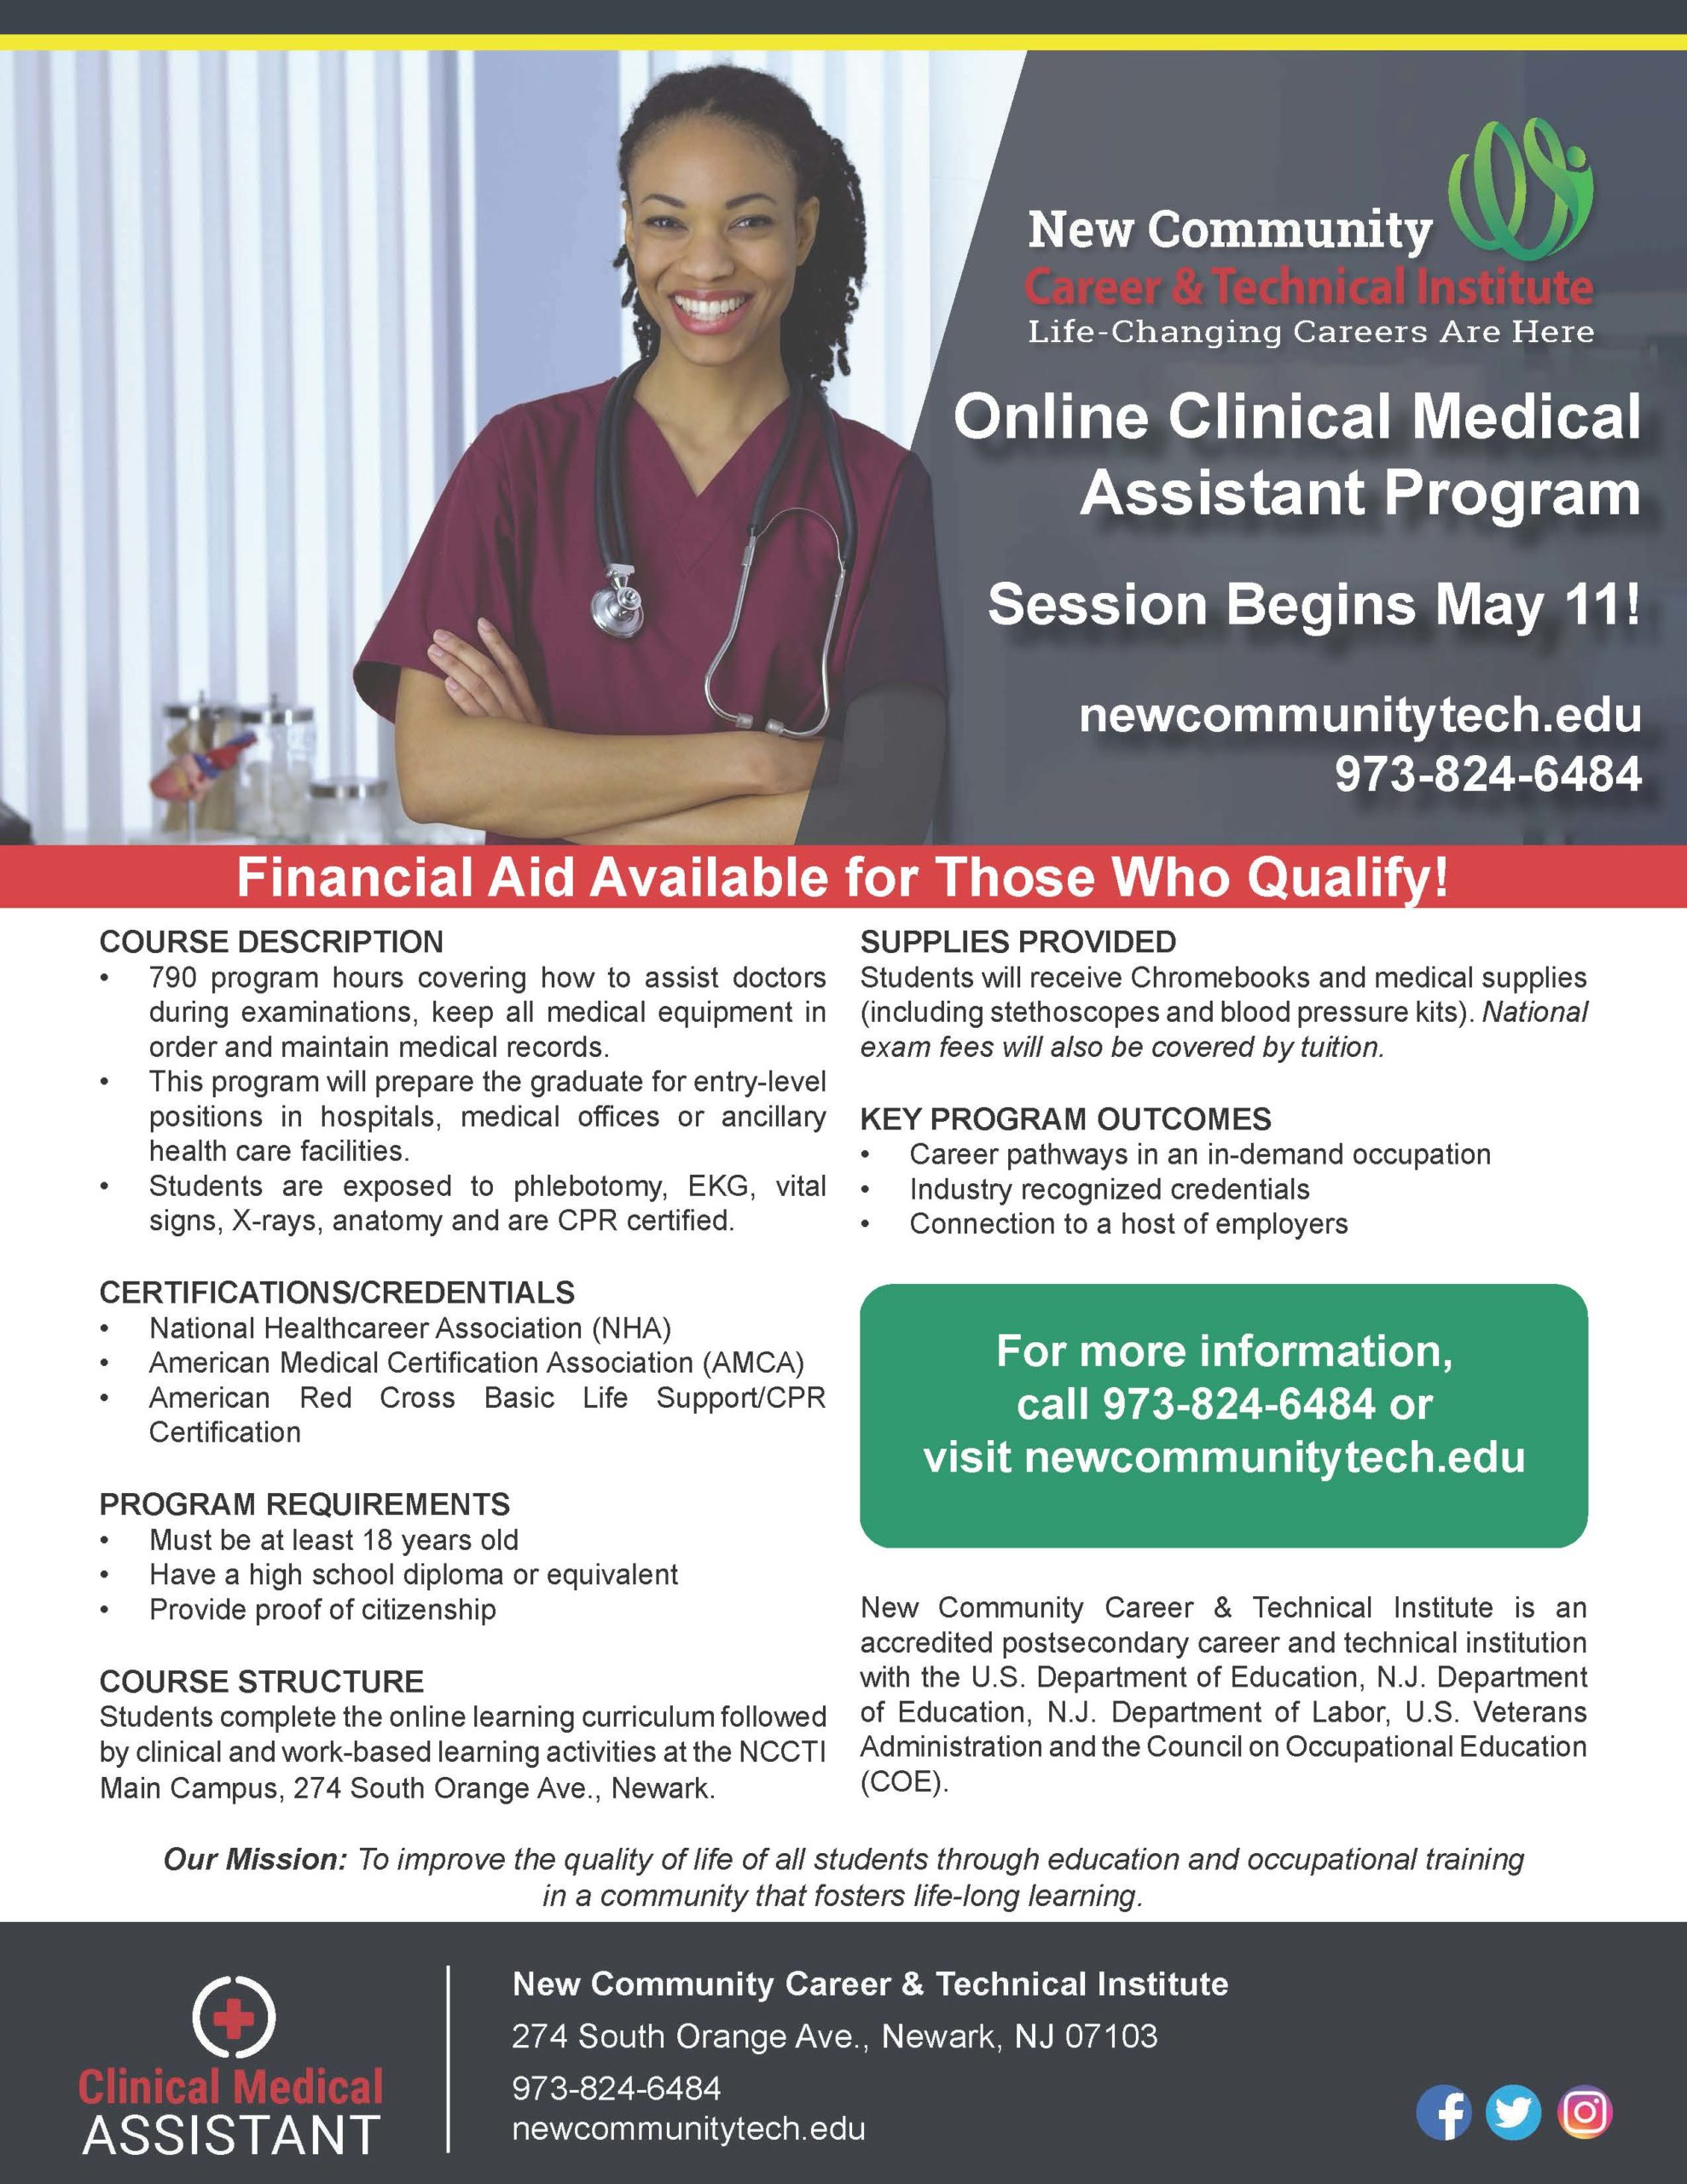 NCCTI Online Health Care Programs Begin